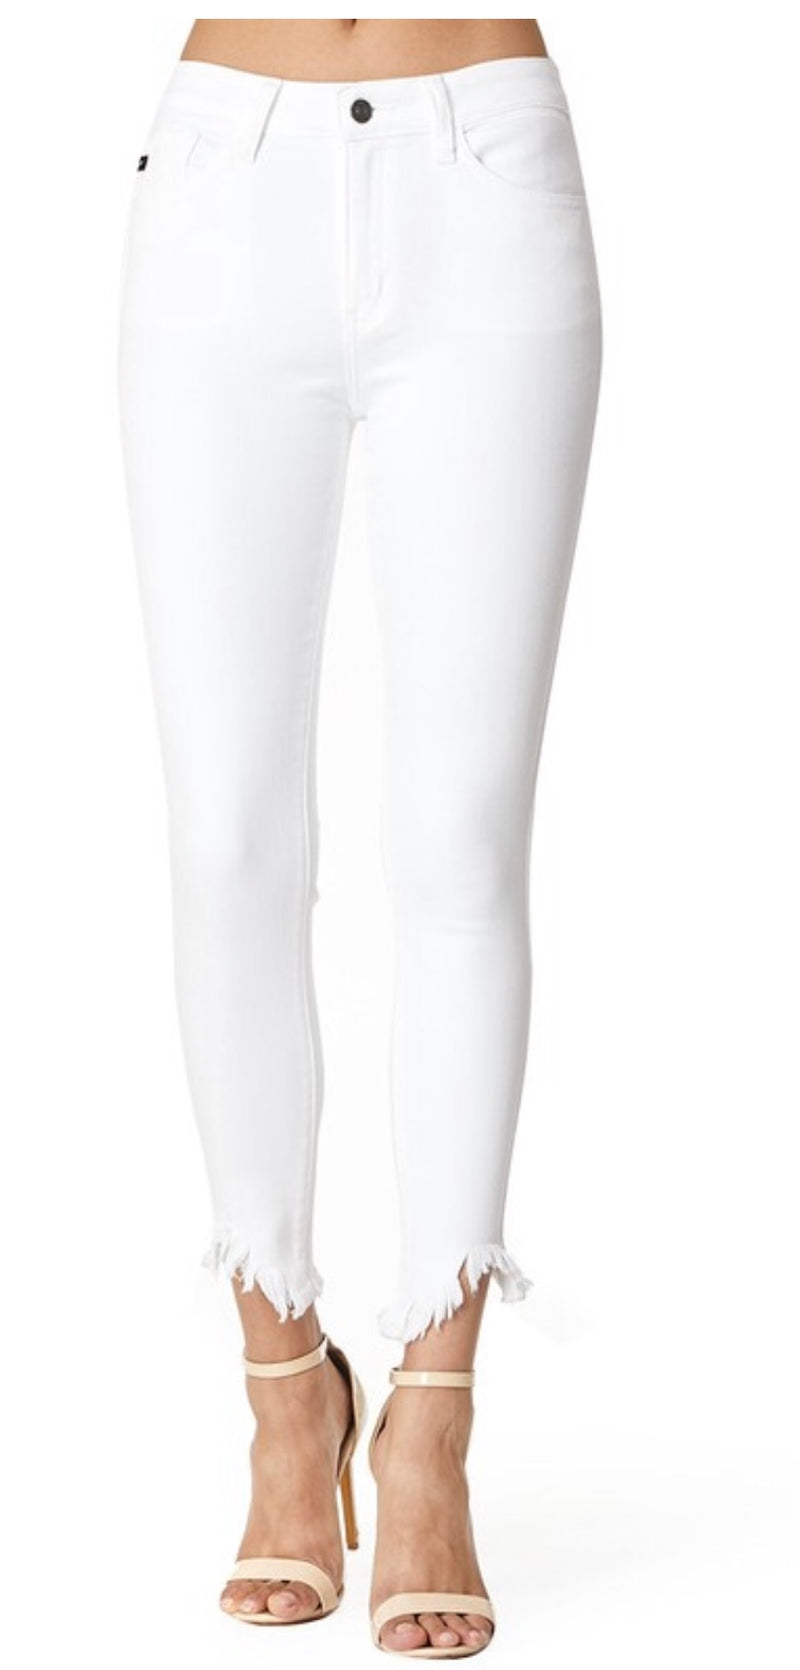 Mid/high rise white jeans with frayed hem